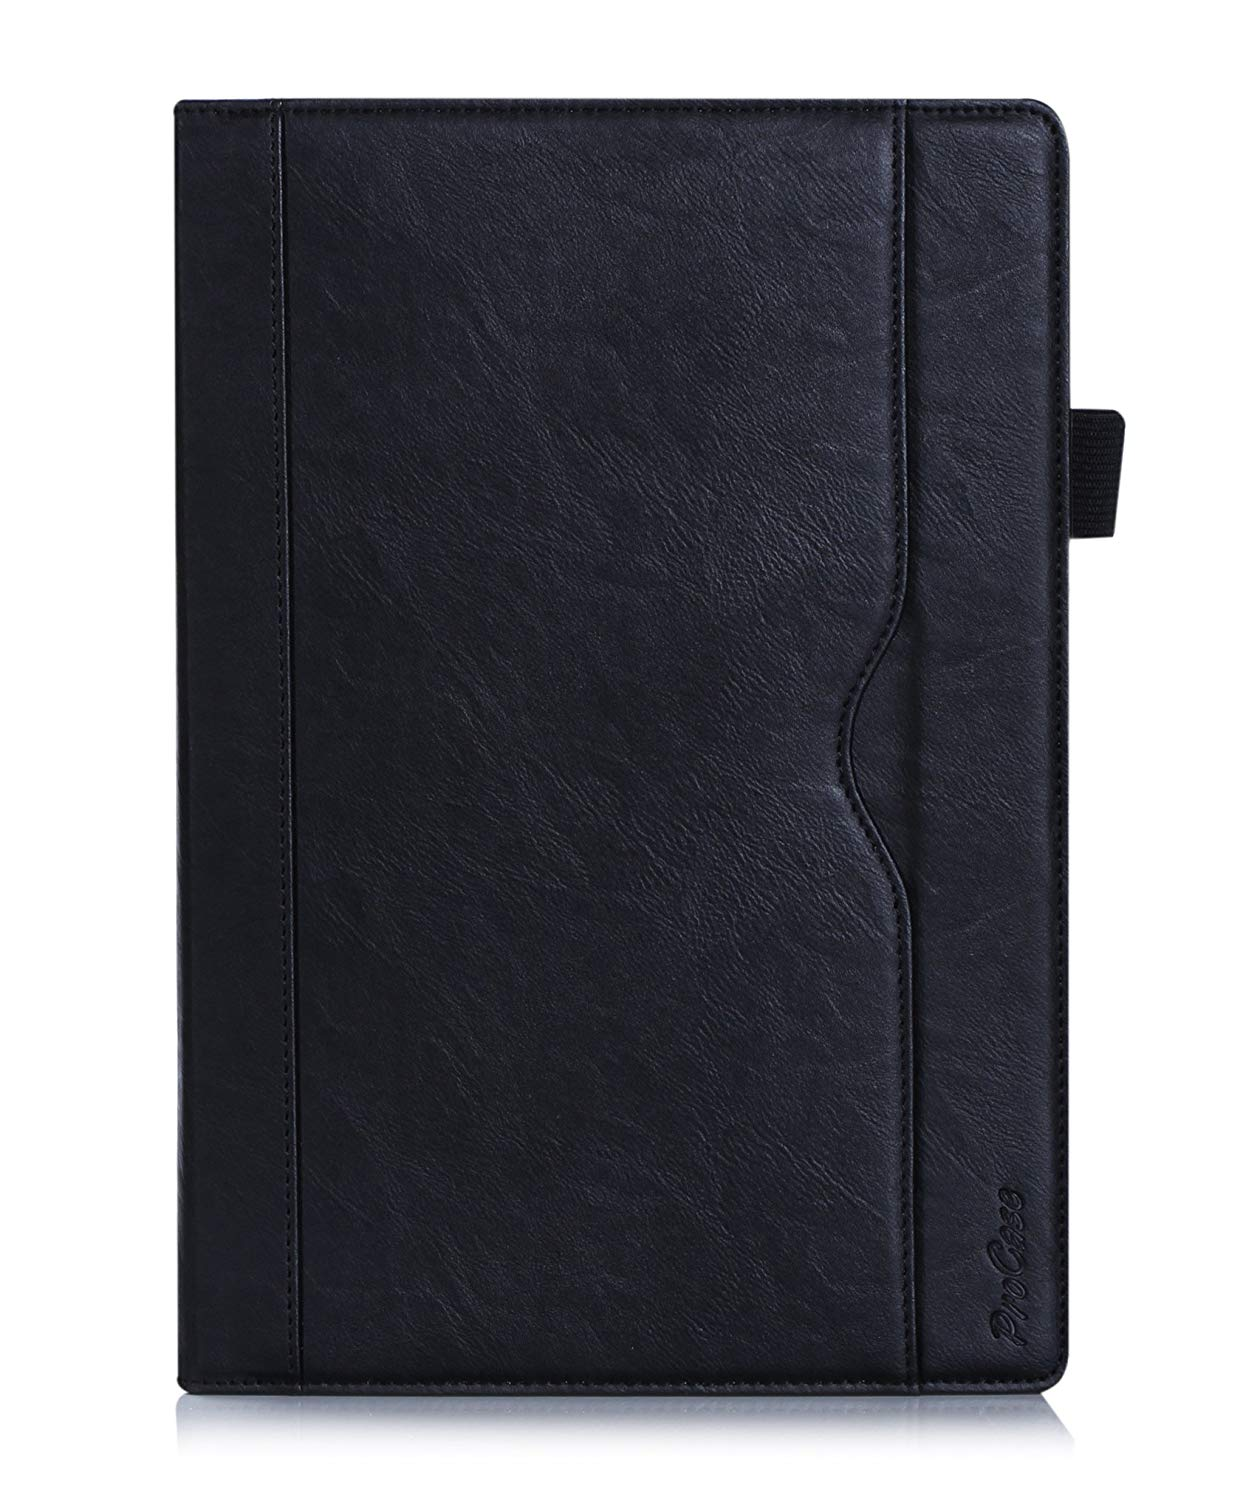 Lenovo Tab 2 A10 / Tab 10 Leather Folio Case | ProCase